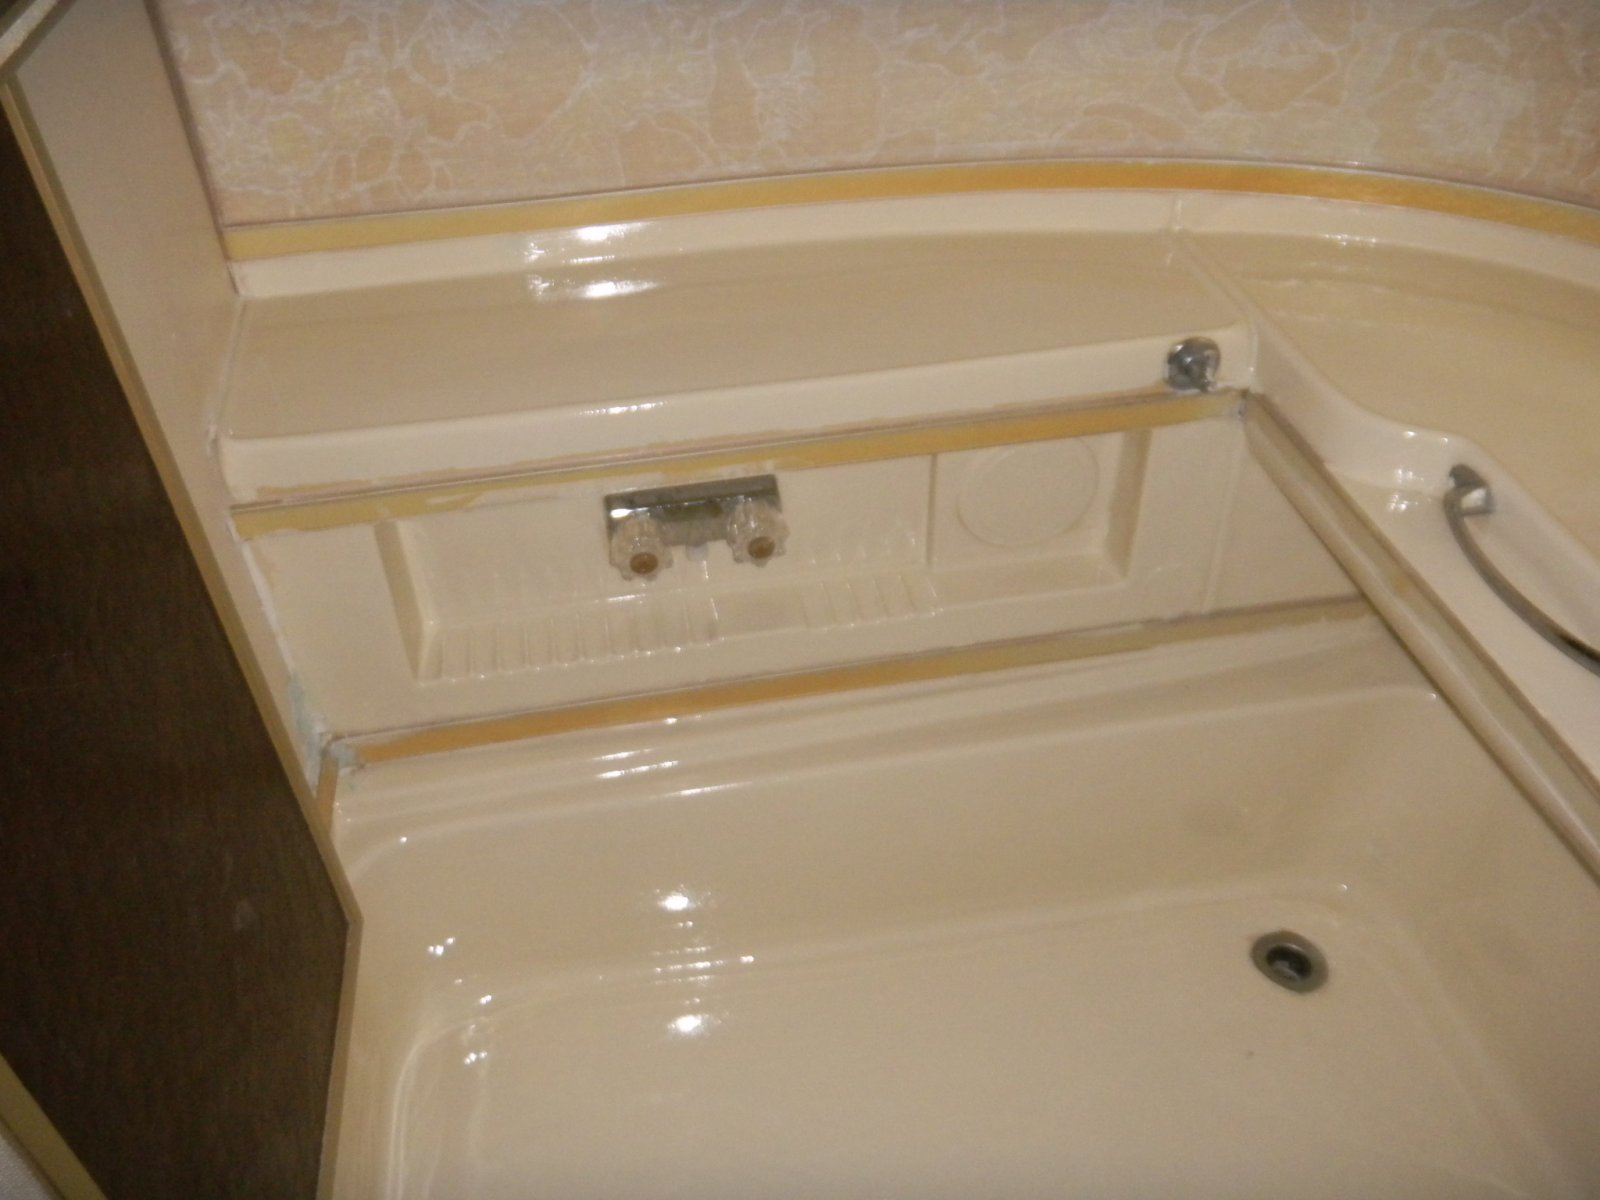 Refinishing Argosy Tub? - Airstream Forums